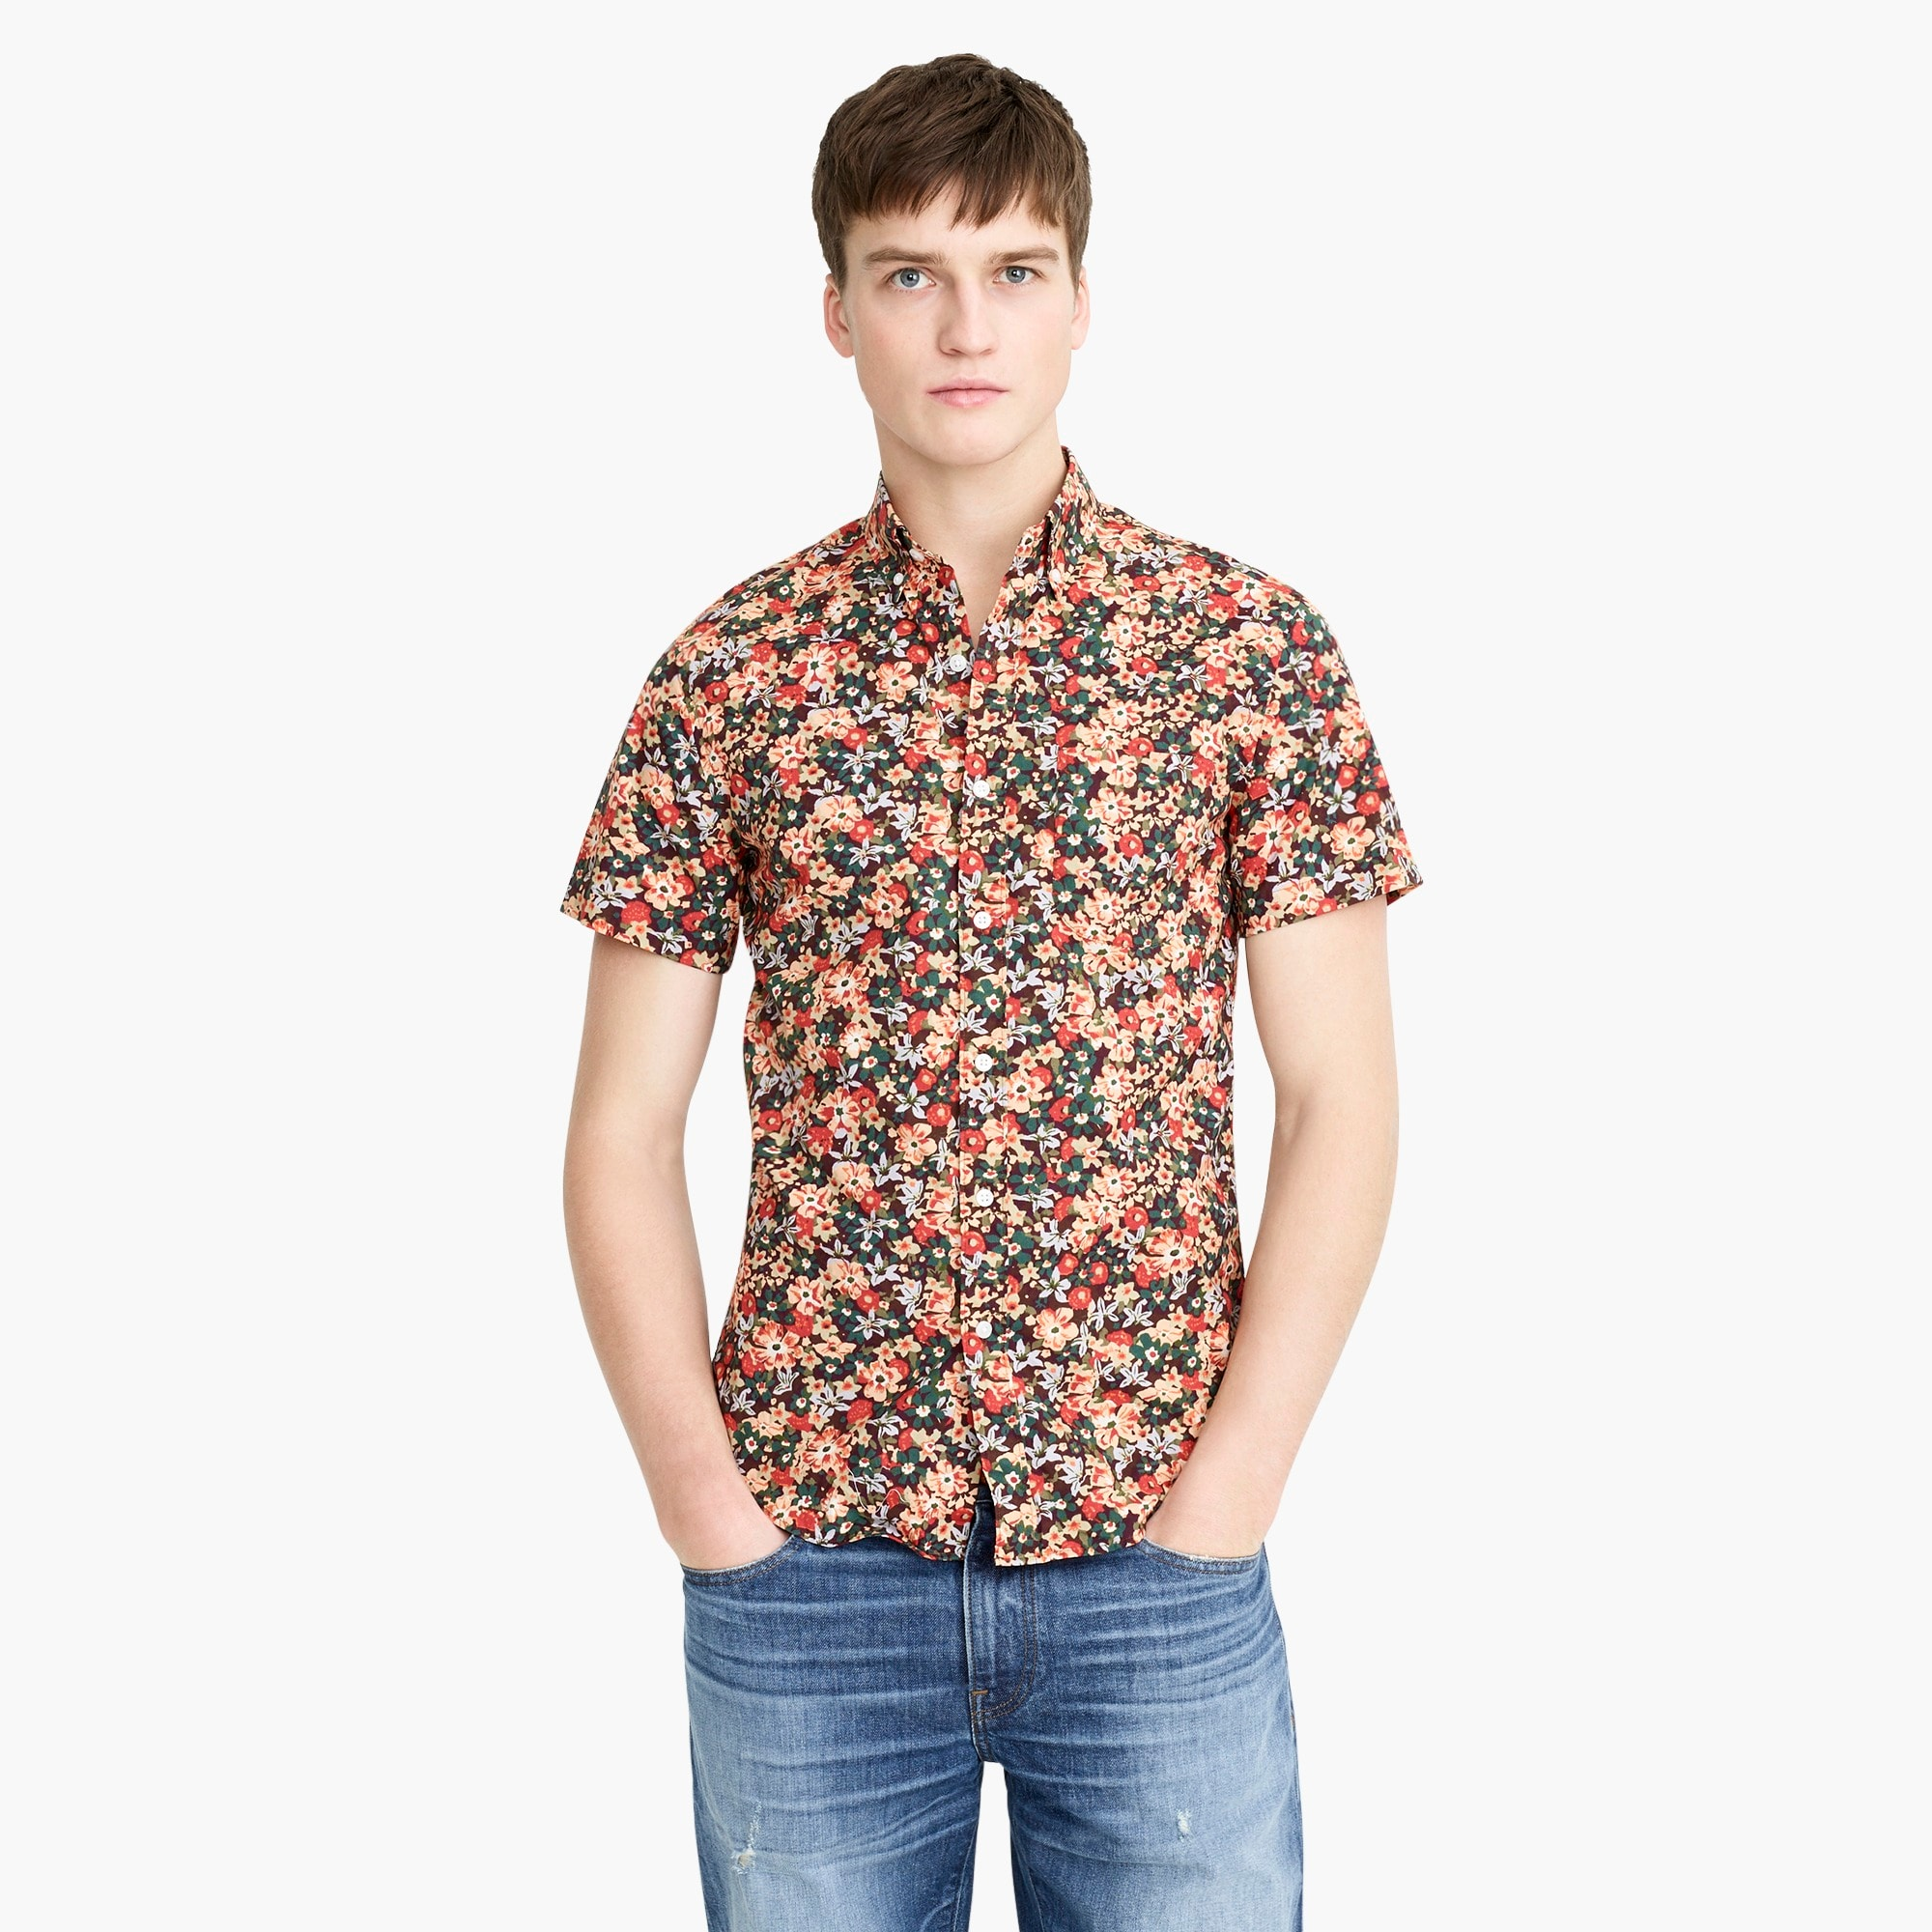 mens Short-sleeve Secret Wash shirt in Springfield floral